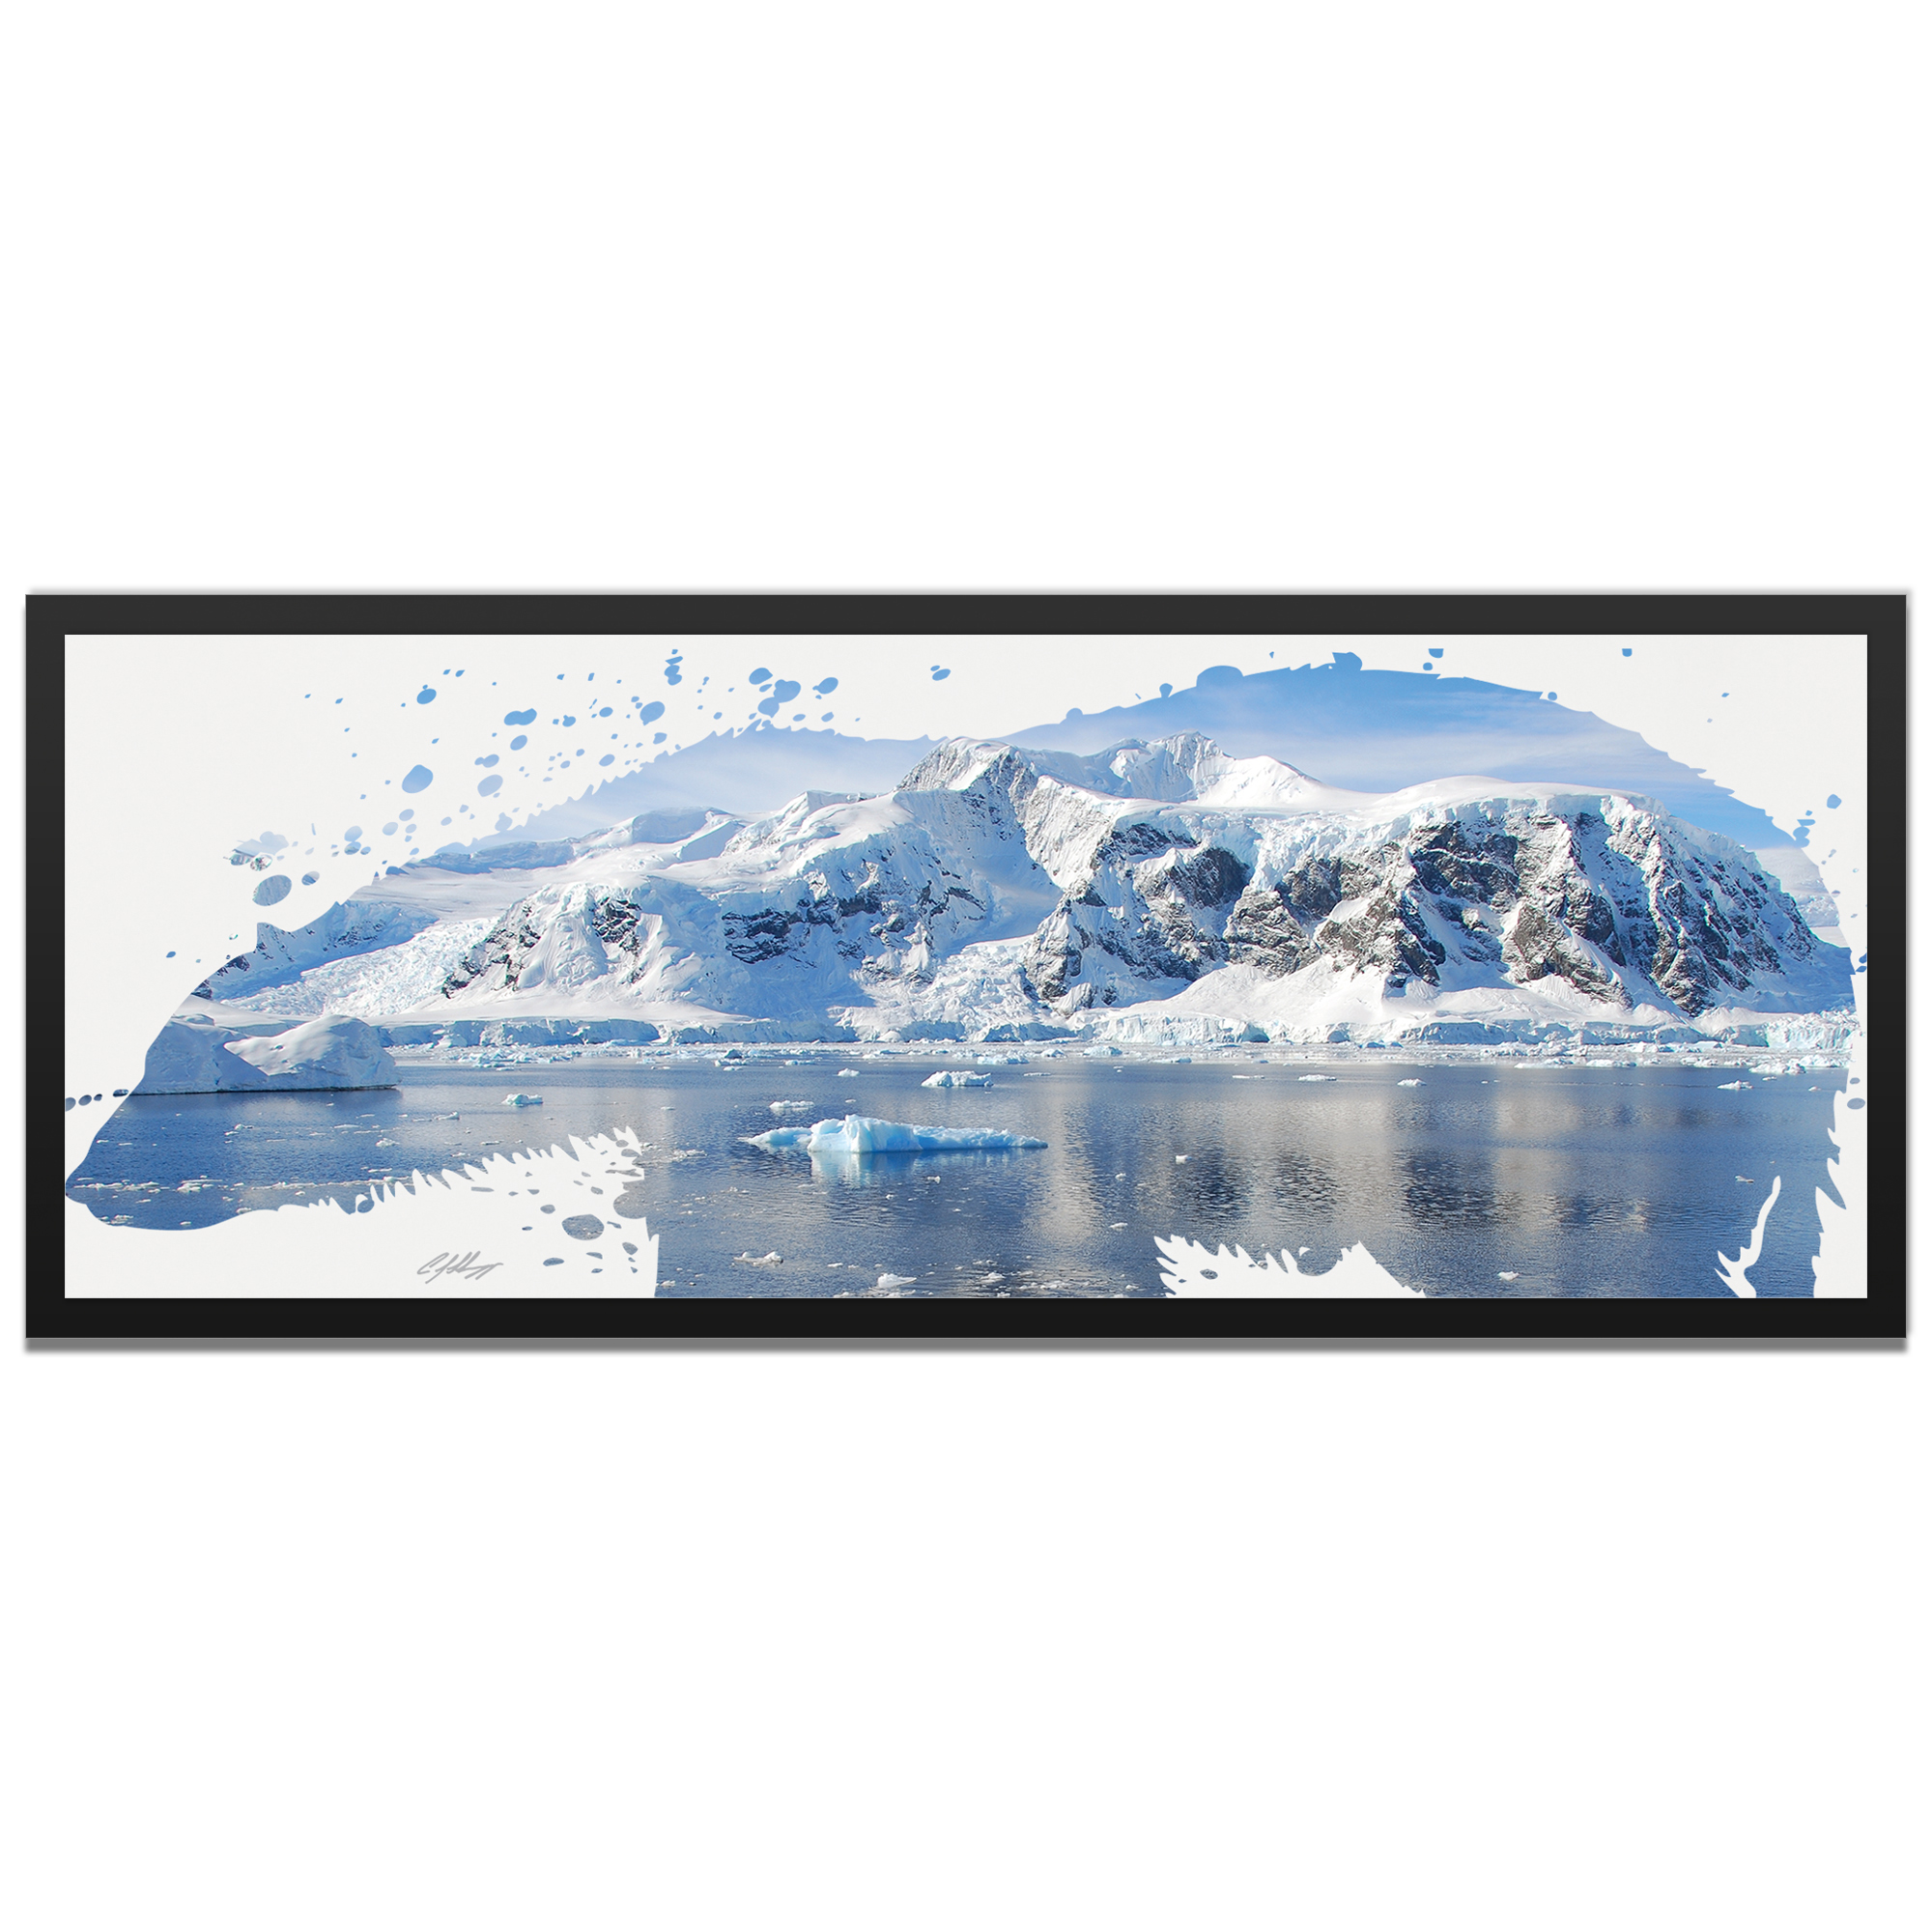 Adam Schwoeppe 'Polar Bear Arctic Framed' 48in x 19in Contemporary Animal Silhouette Art on Colored Metal